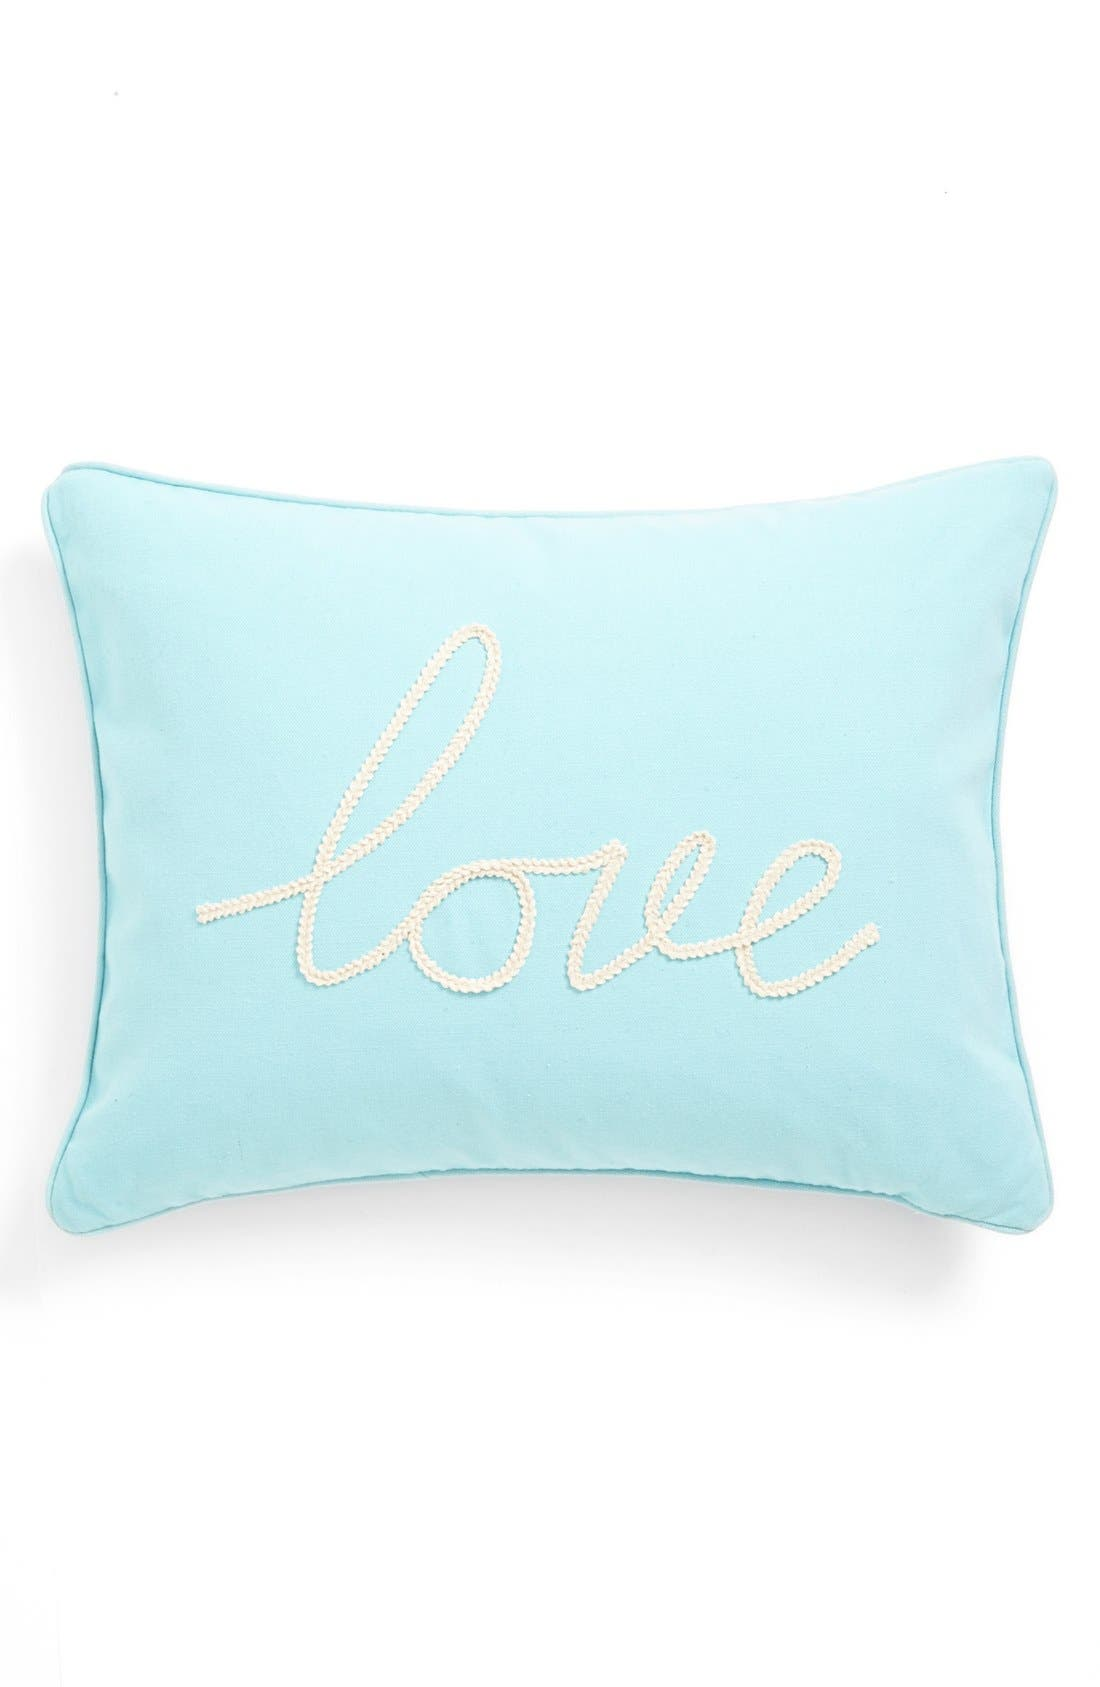 Alternate Image 1 Selected - Nordstrom at Home 'Love' Pillow